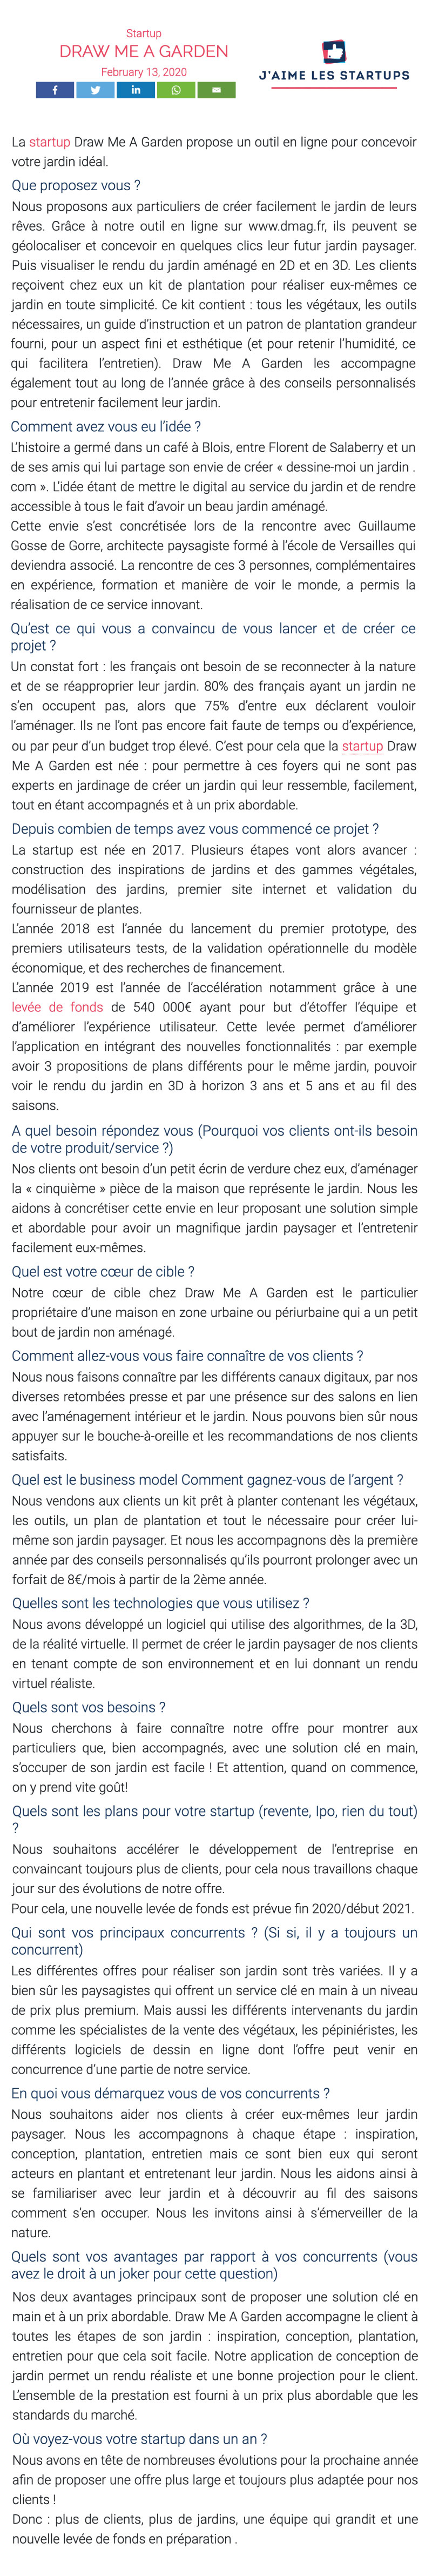 Press report on Draw Me A Garden published on 'J'aime les startups' website.